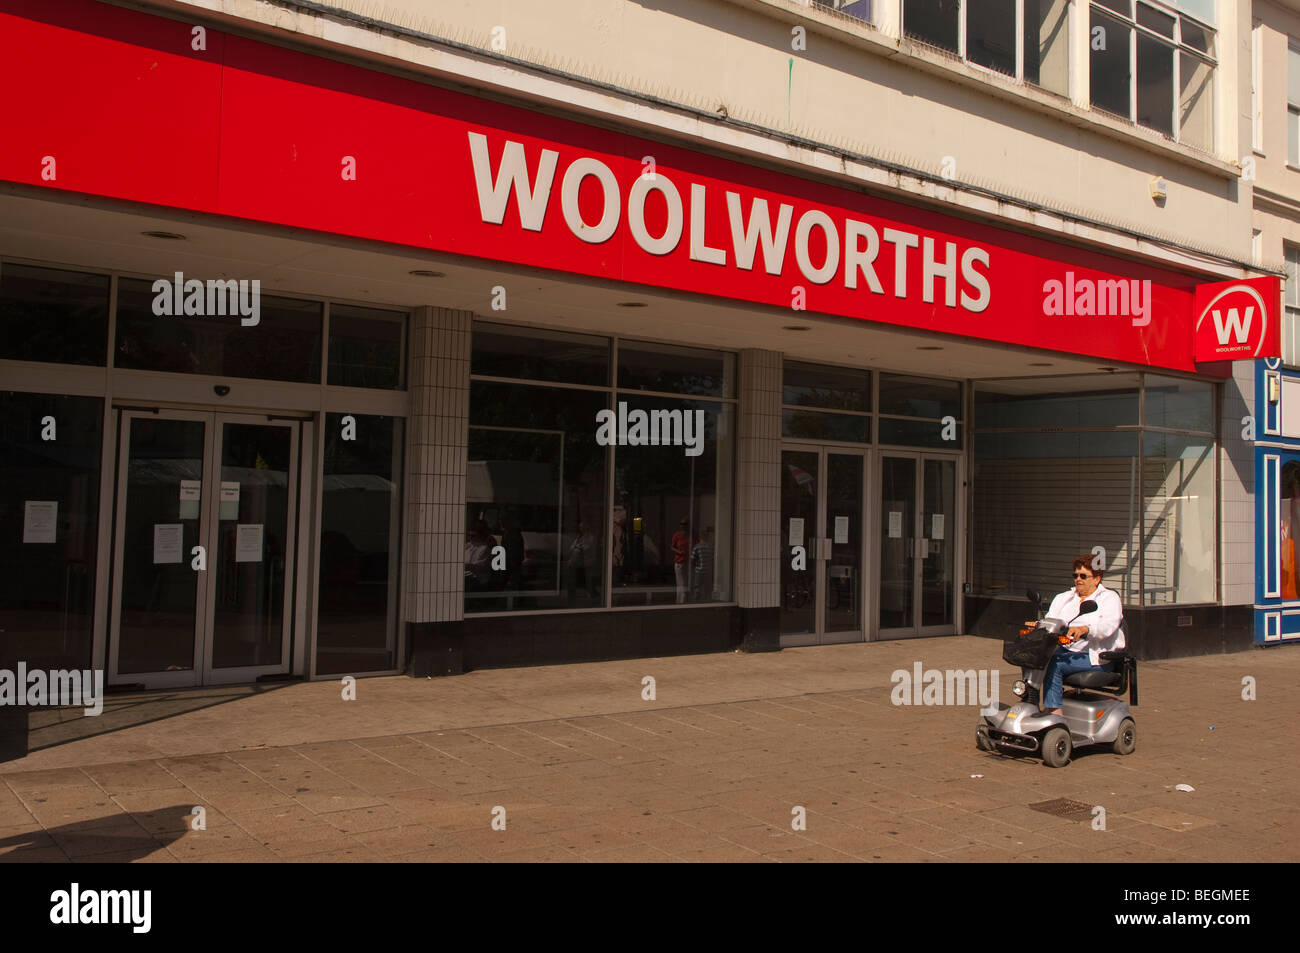 woolworths uk - DriverLayer Search Engine